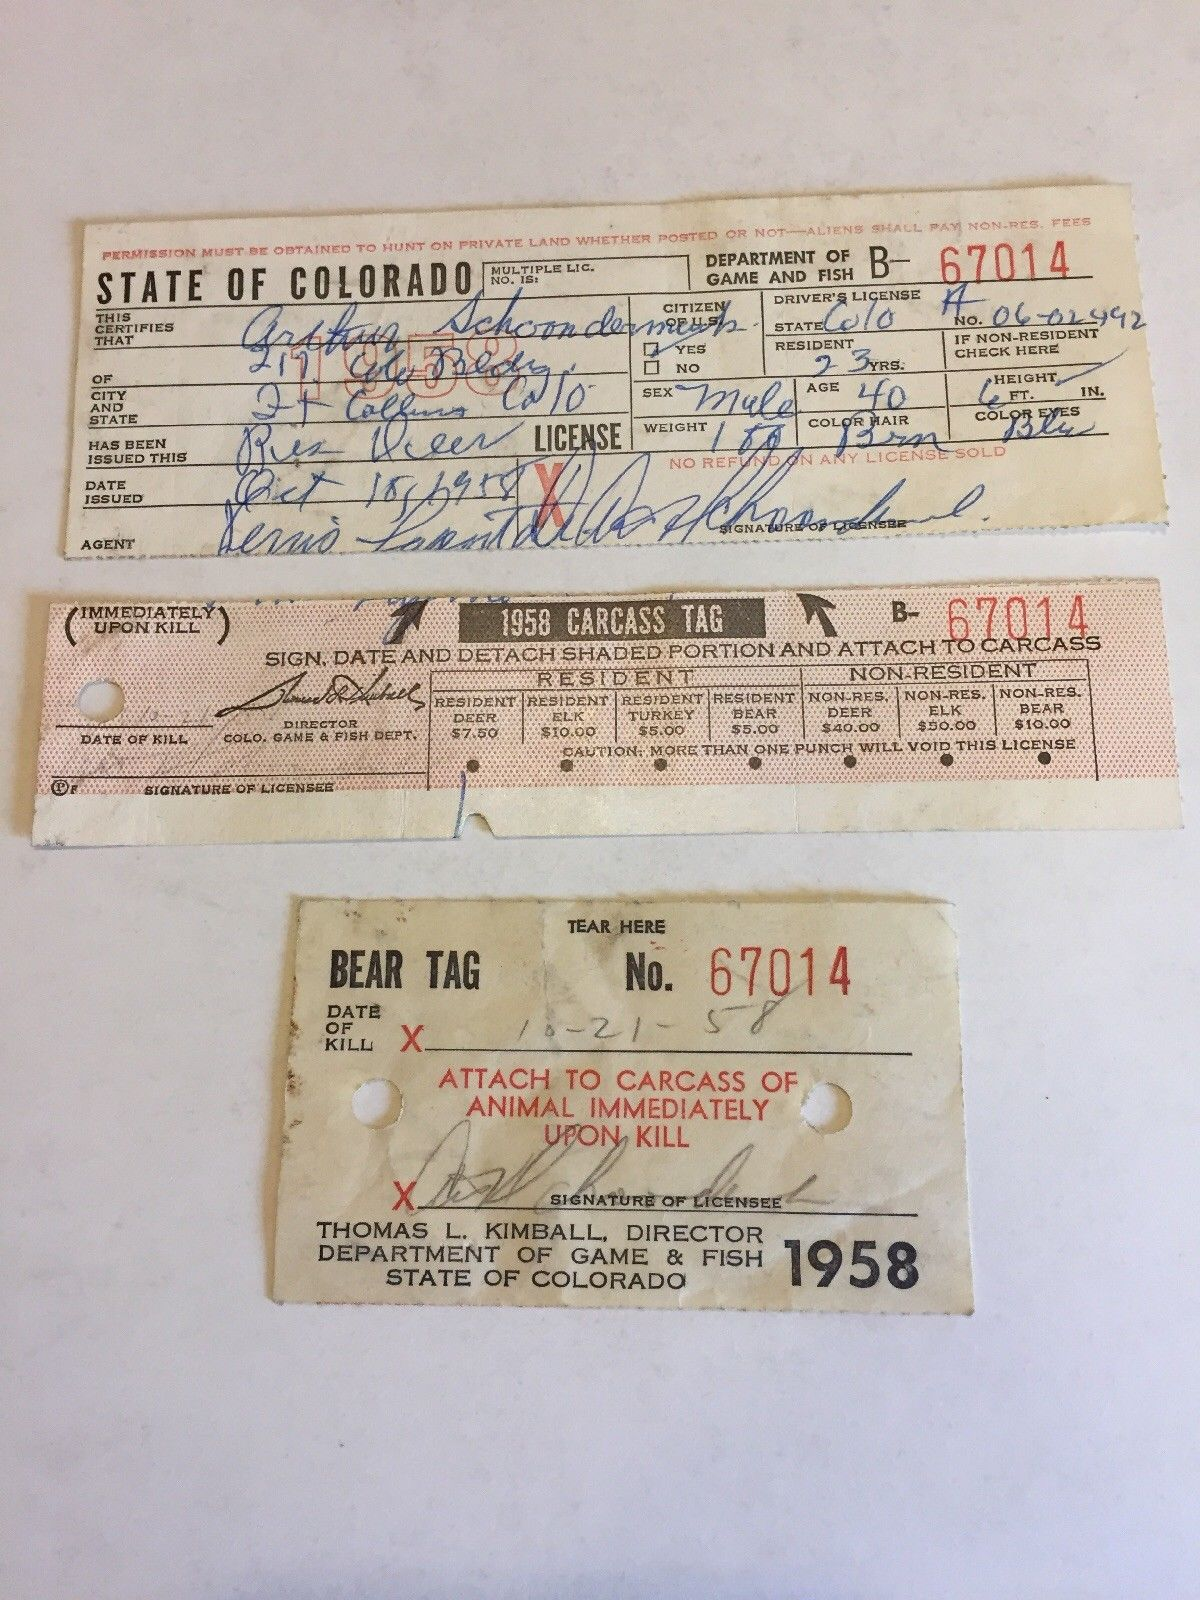 1958 state of colorado resident deer hunting license 67014